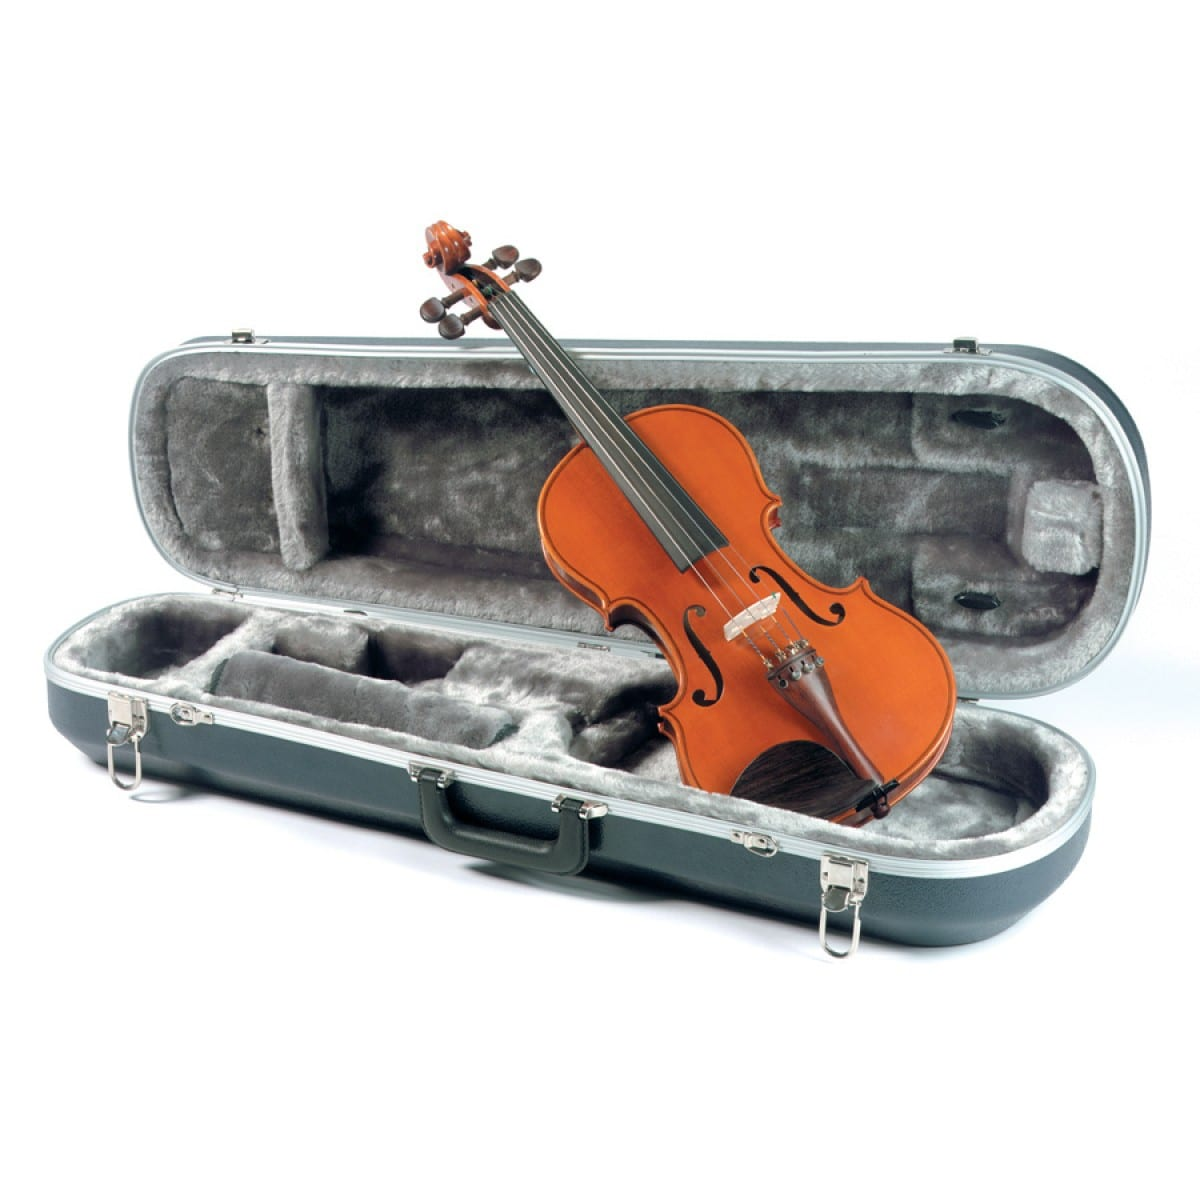 What Are the Best Violin Brands for Beginners? – TakeLessons Blog